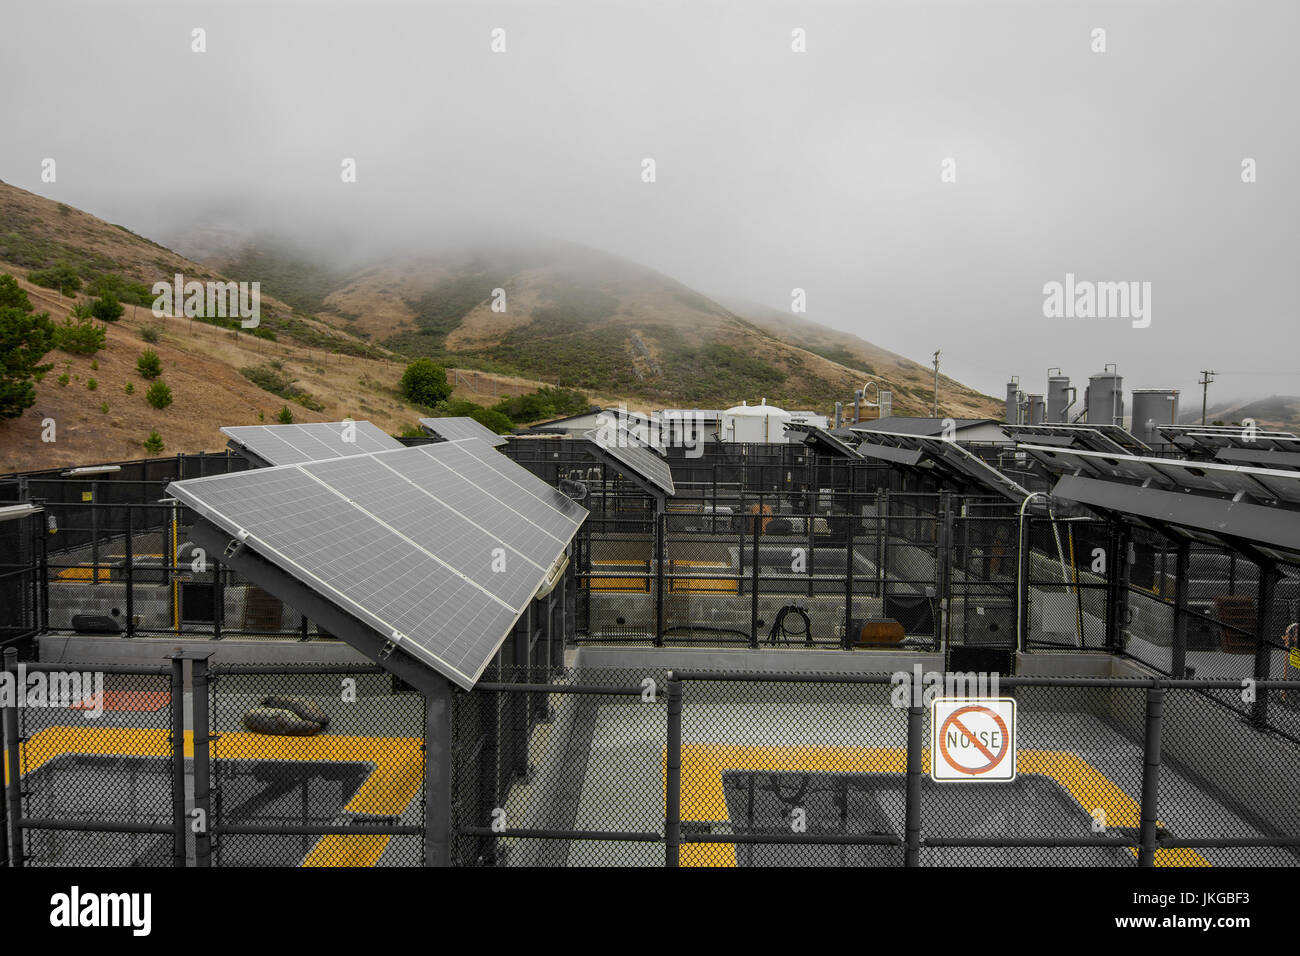 Inside the Marine Mammal Center and its solar pannels. The Marine Mammal Center is a nonprofit veterinary research - Stock Image